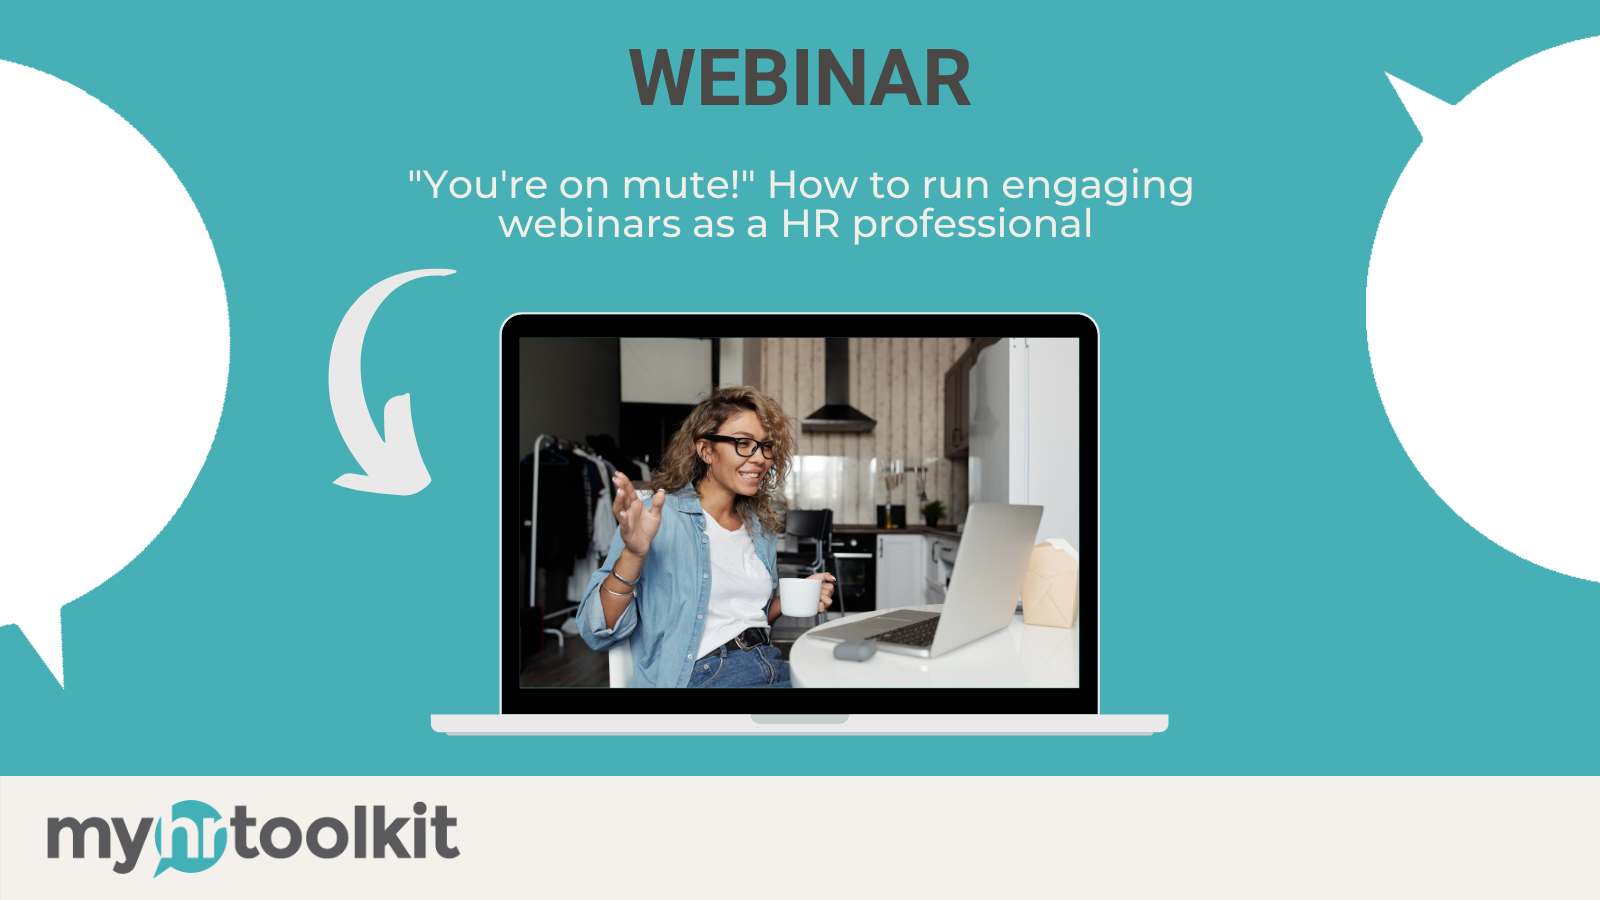 How to run engaging webinars as a HR professional